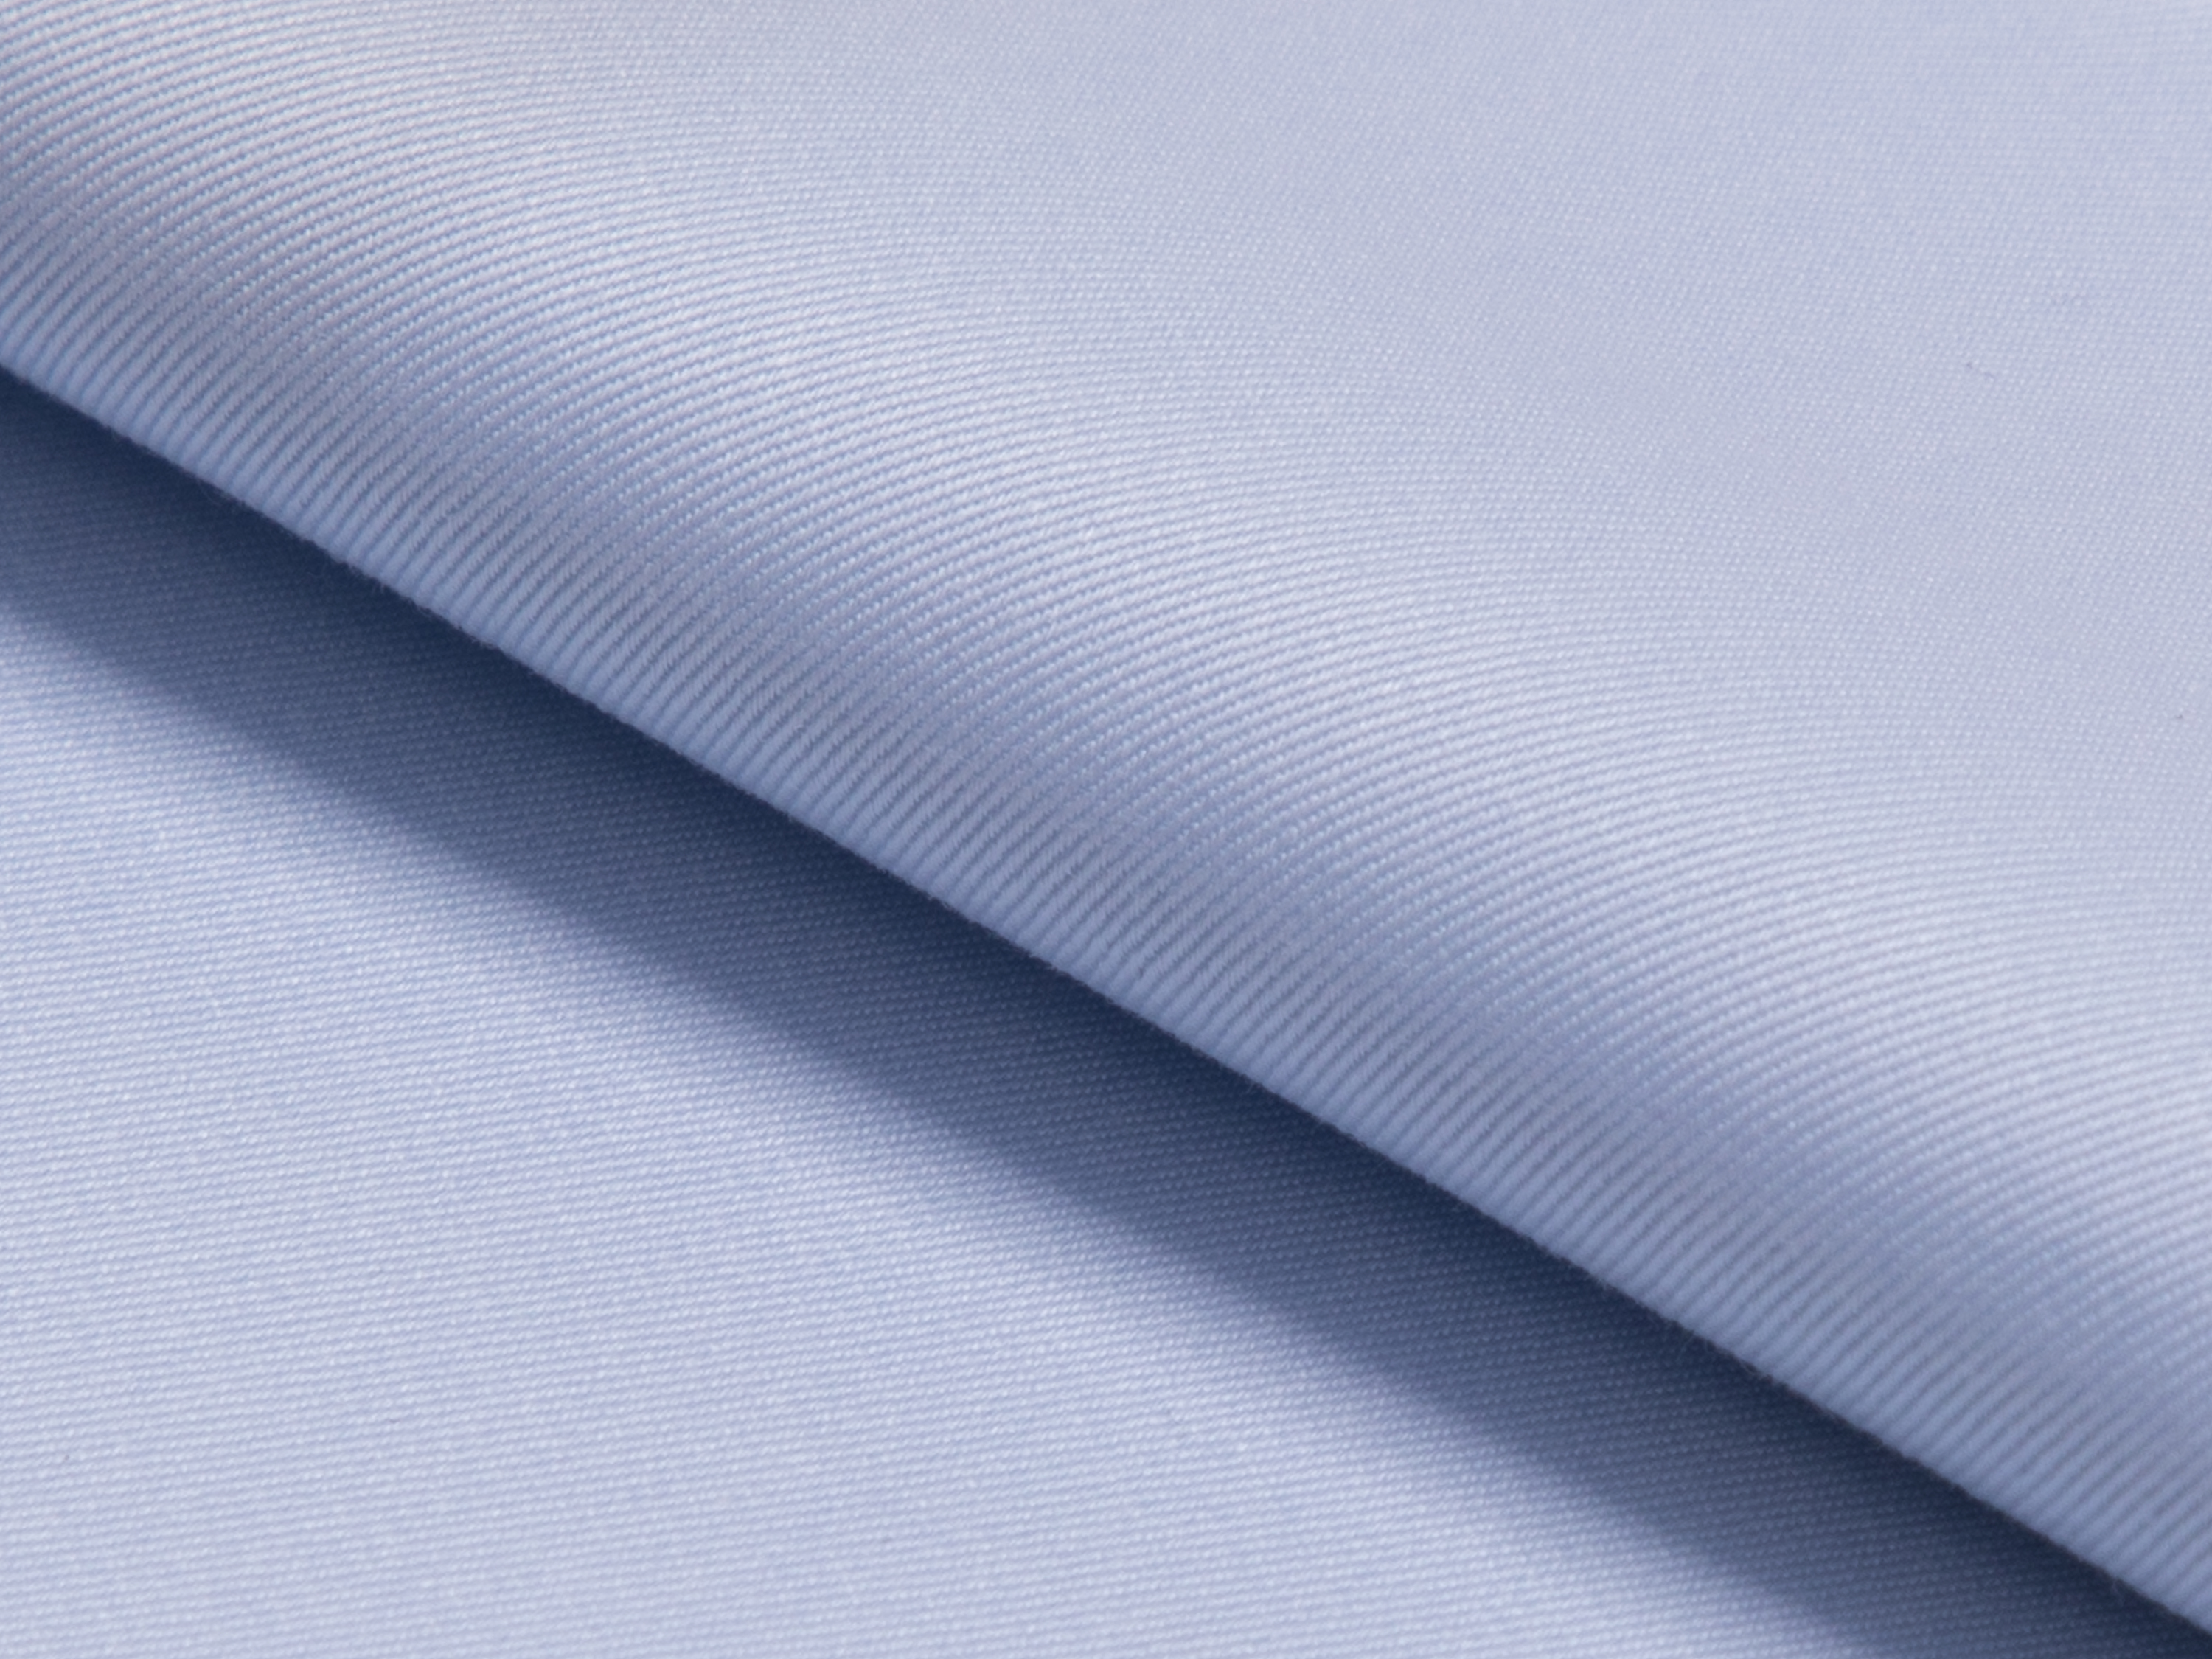 Buy tailor made shirts online - MAYFAIR (NEW) - Twill Light Blue